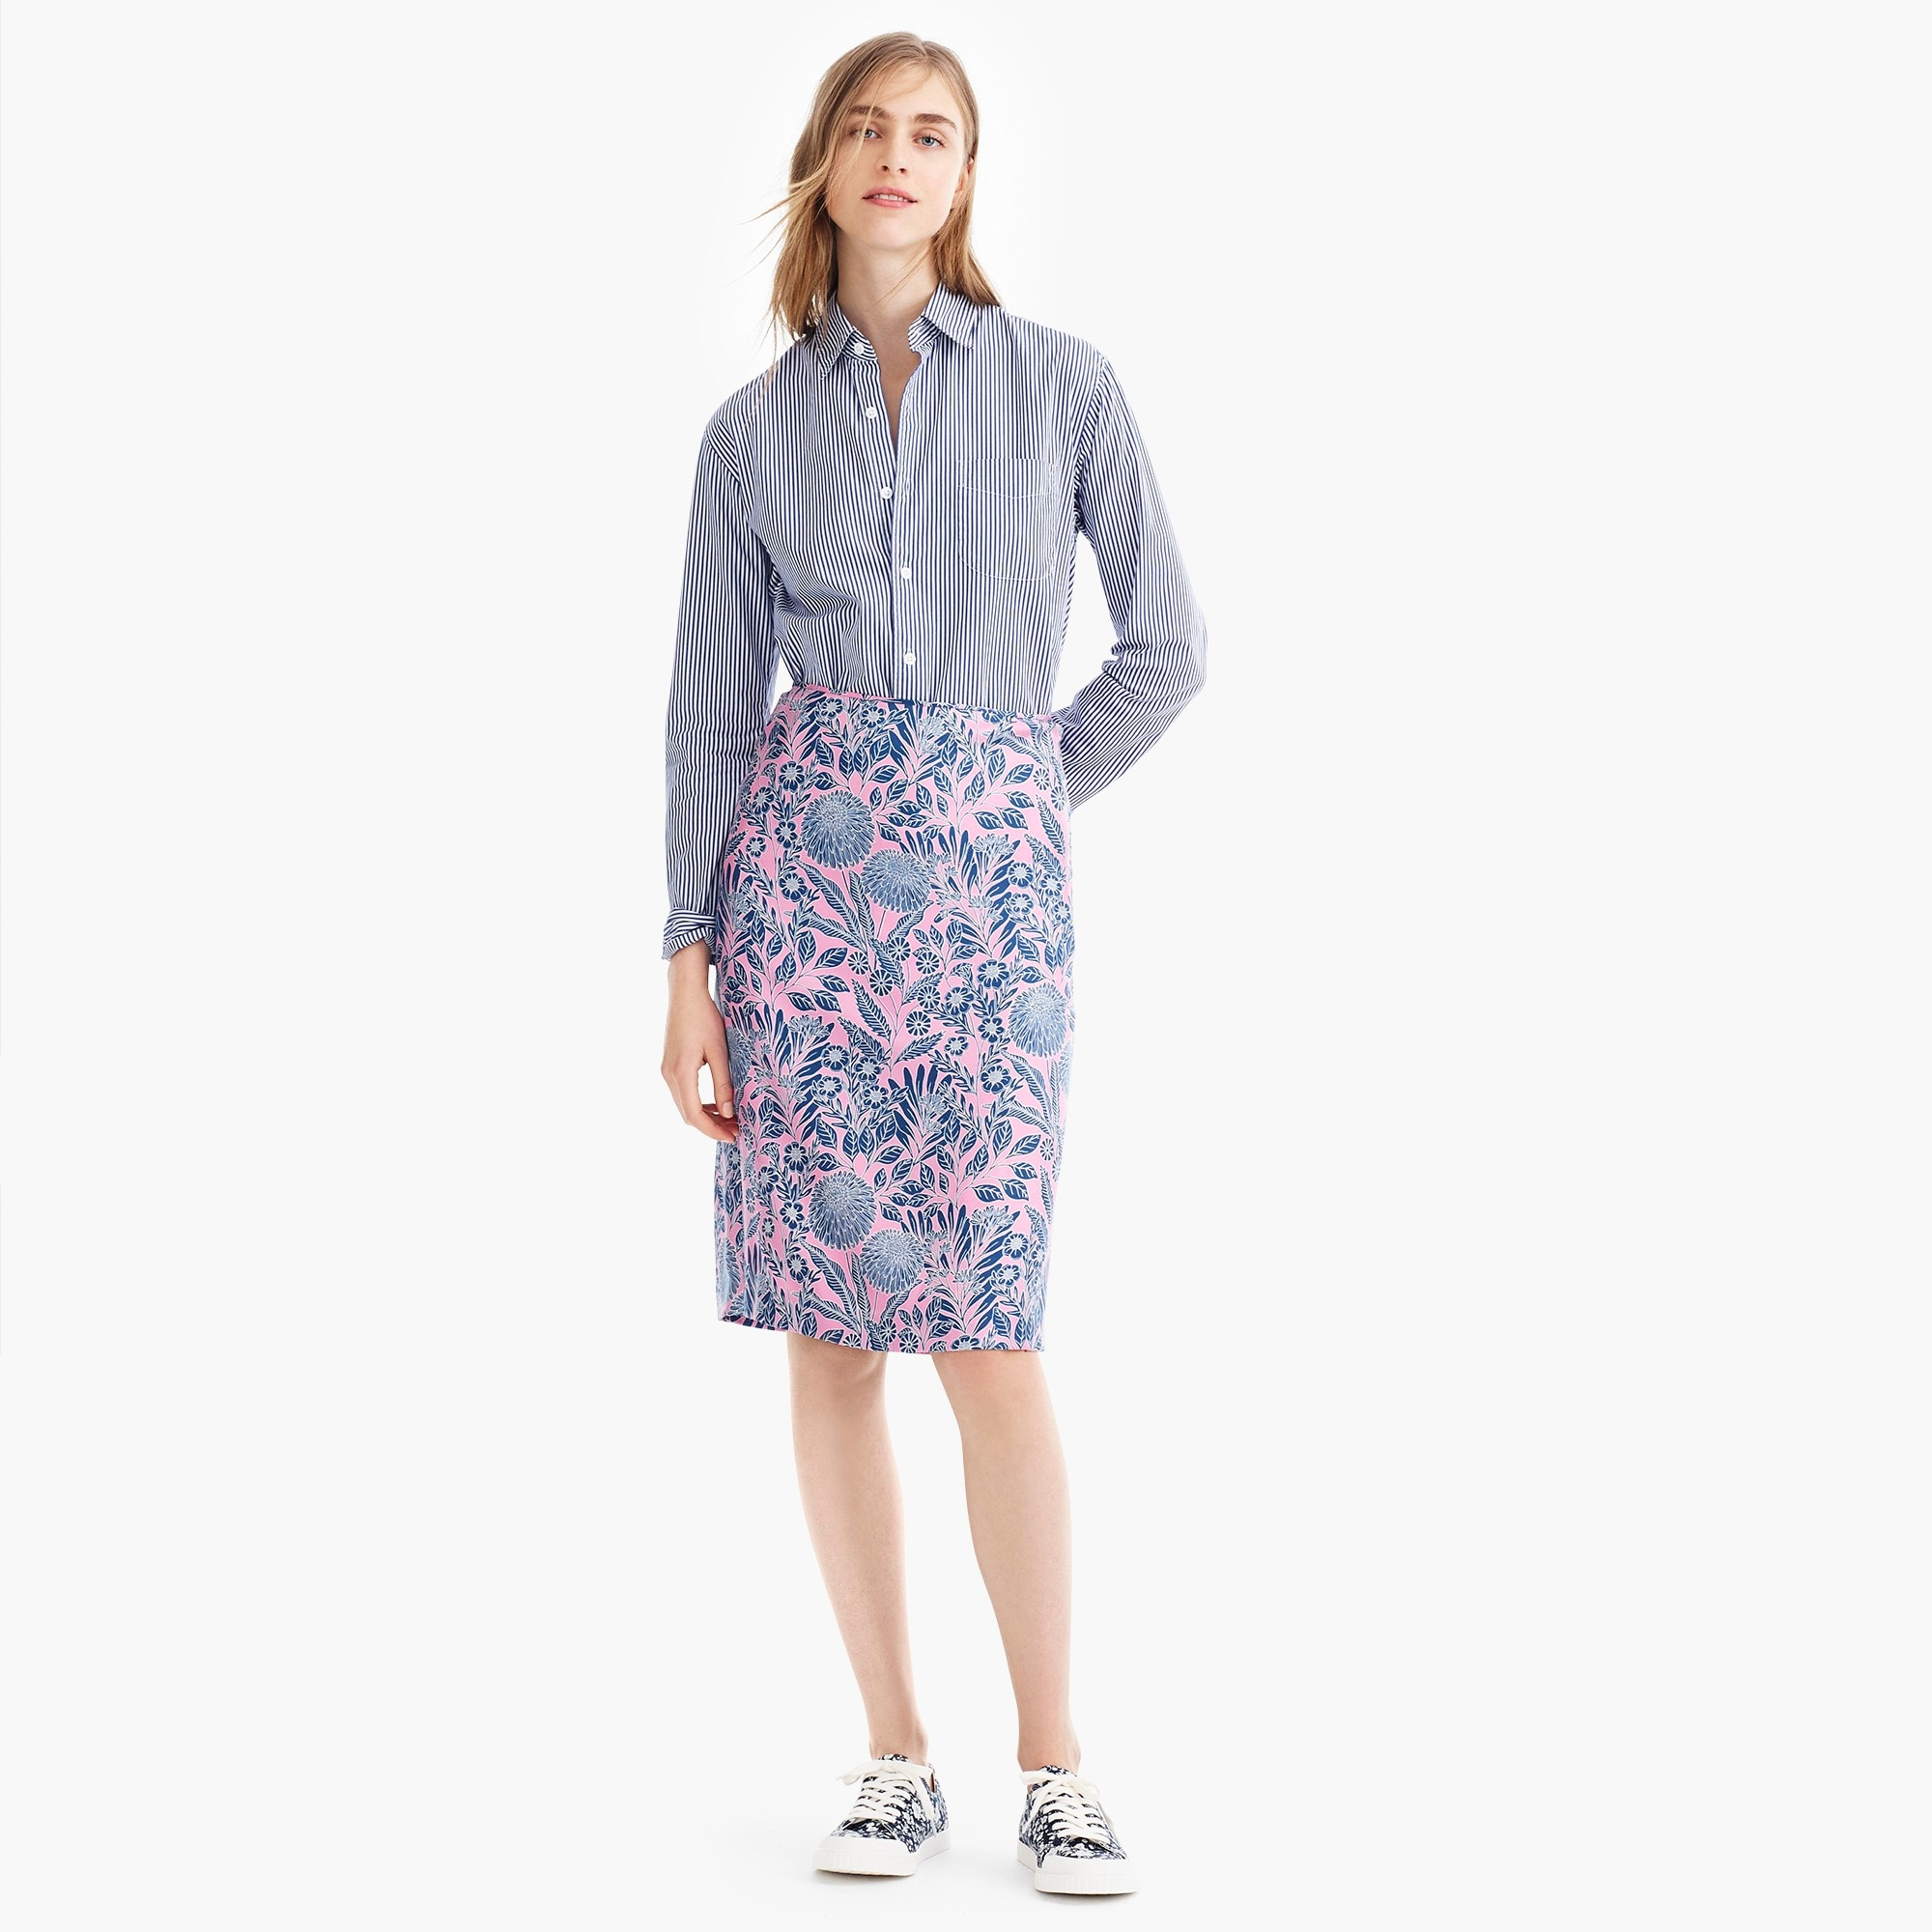 Image 4 for J.Crew X Abigail Borg silk slip skirt